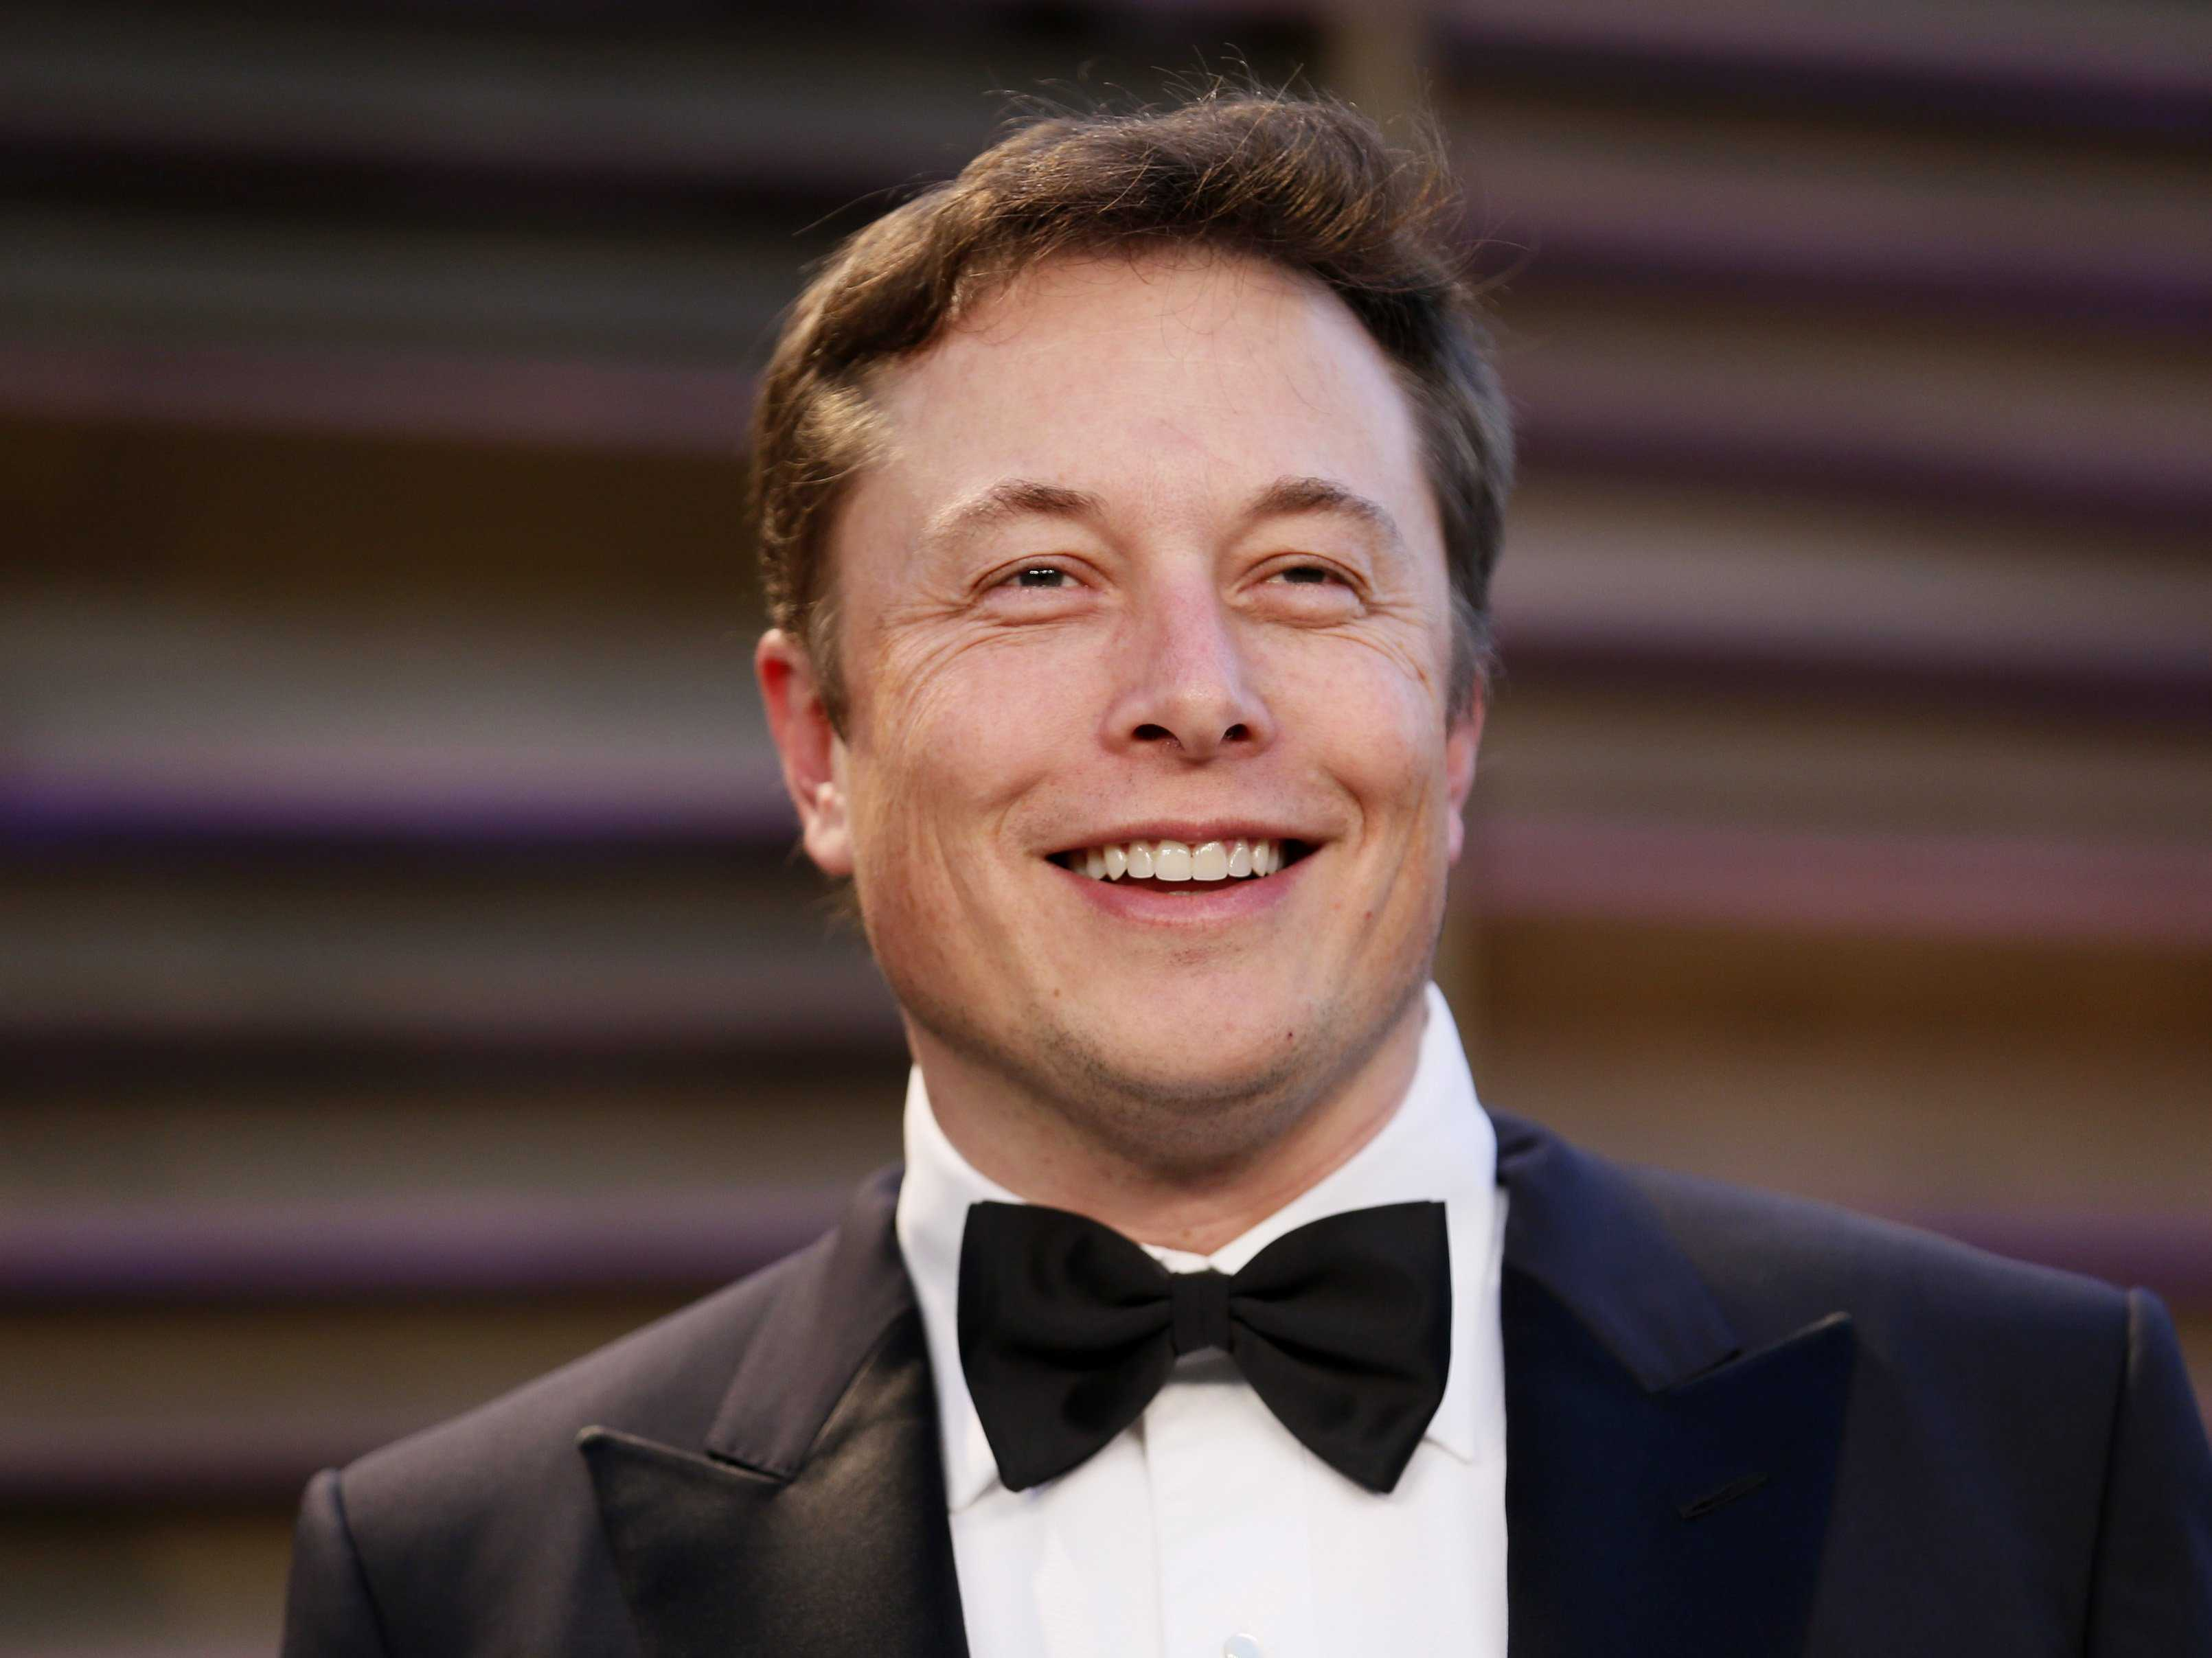 elon musk - THE DAREDEVIL - The 5 Types of IT CEOs: Which One are You?